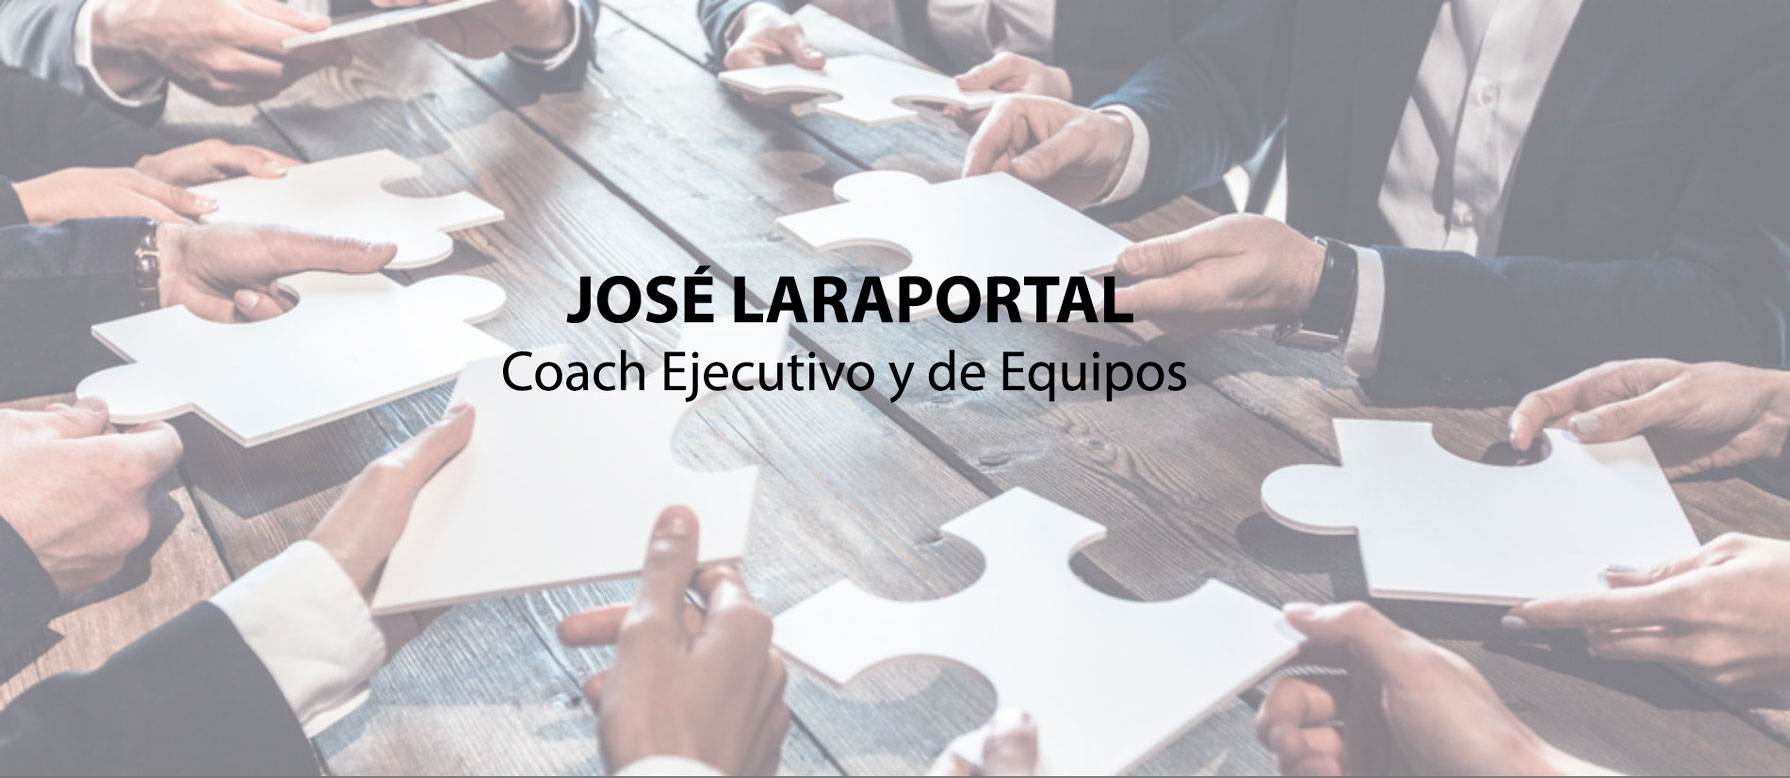 Equipo-opt